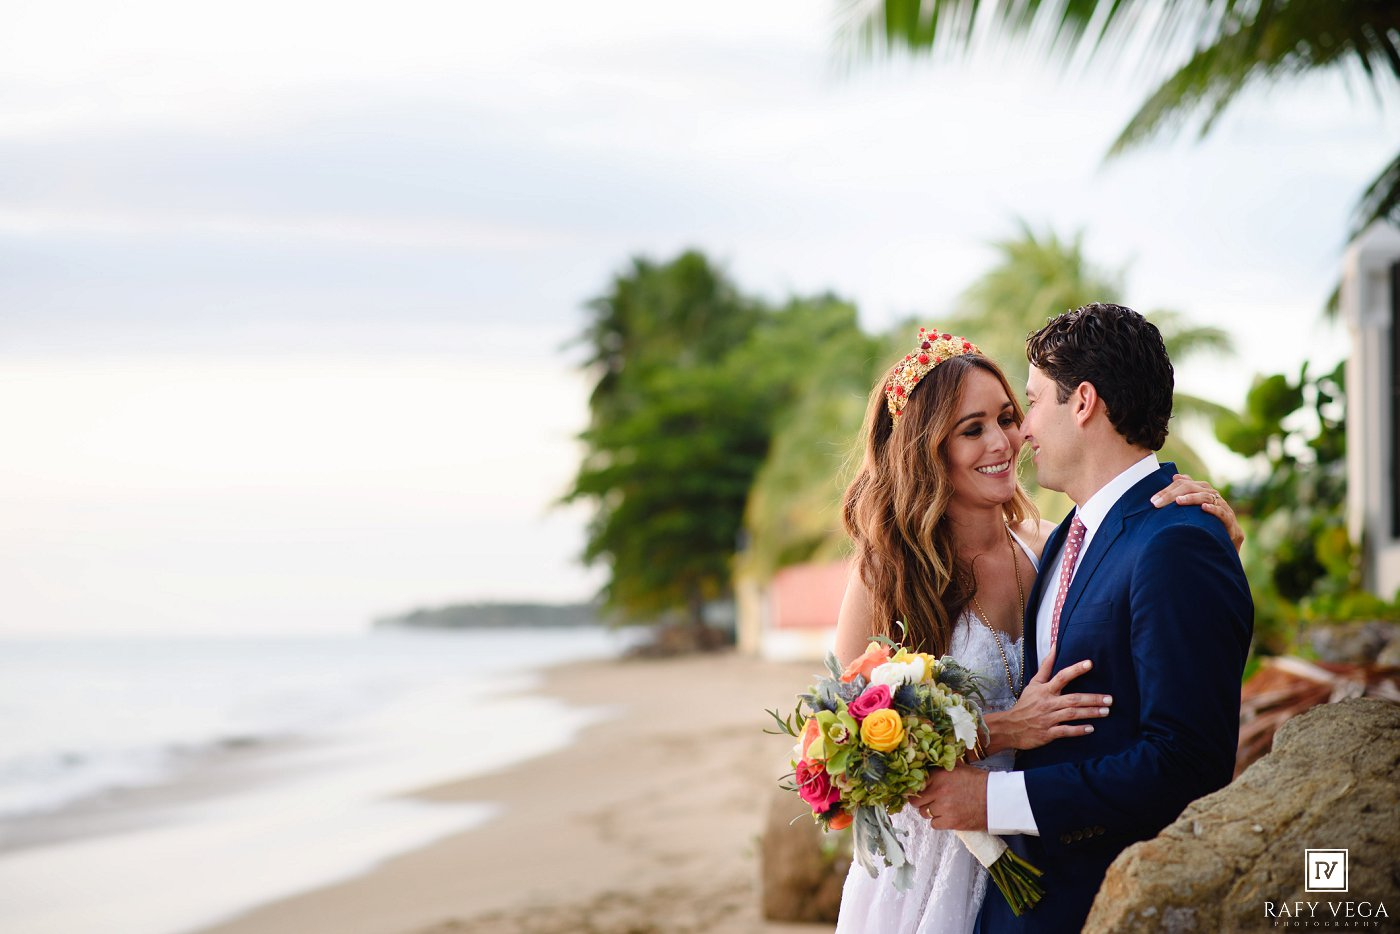 Seepuertorico wedding